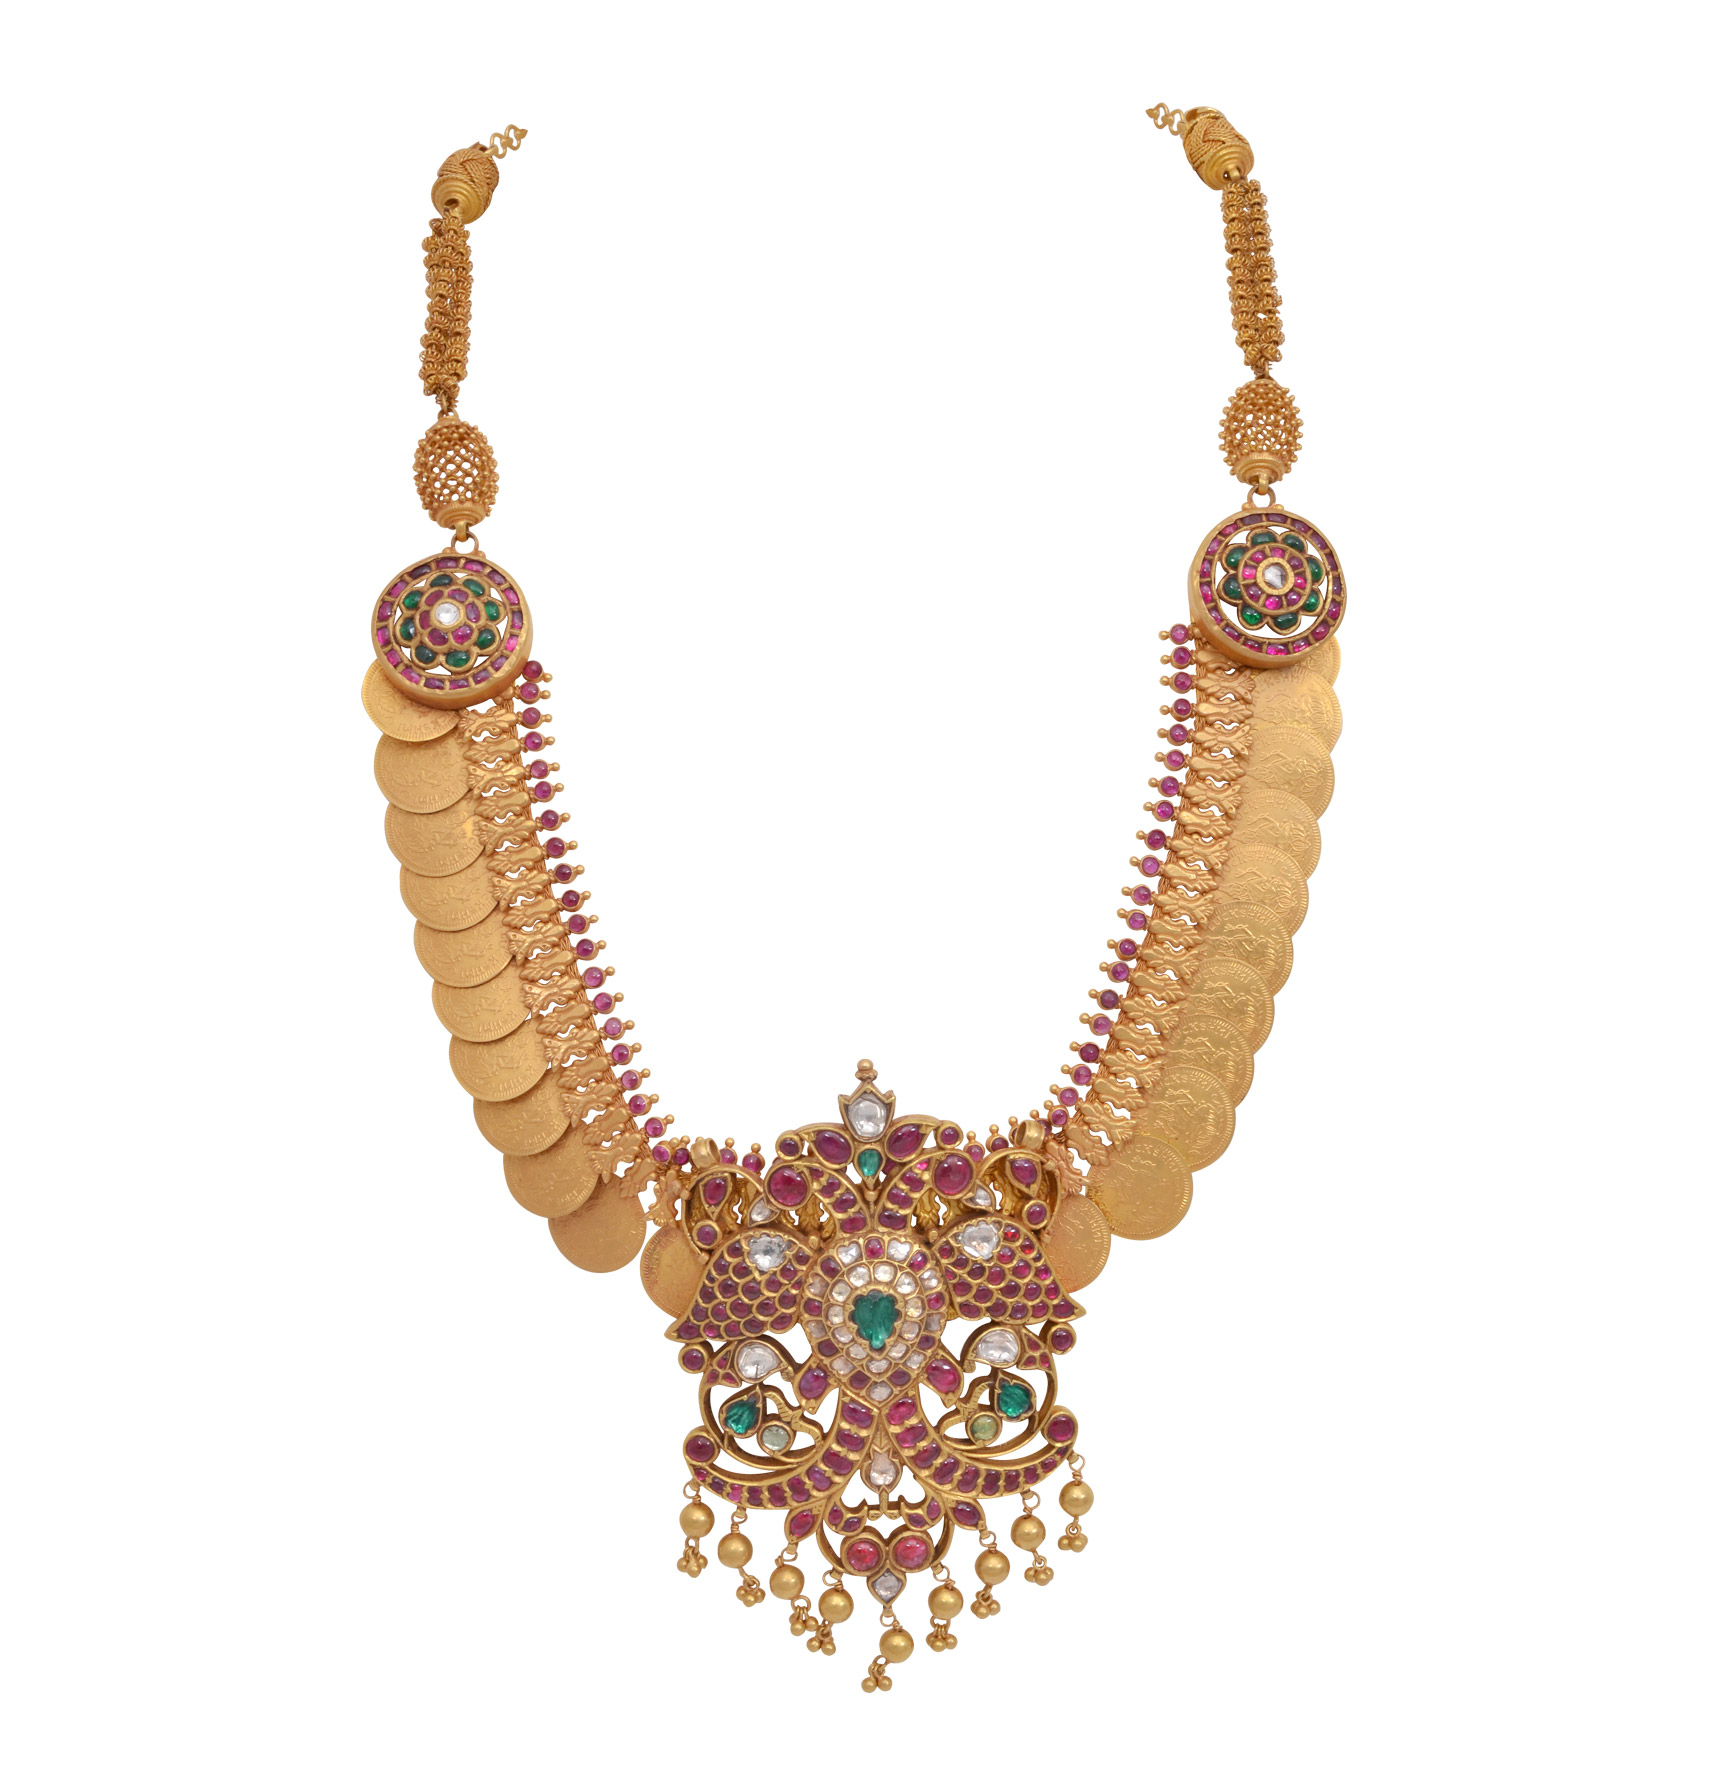 antique necklaces grt jewellers at singapore from 3rd july